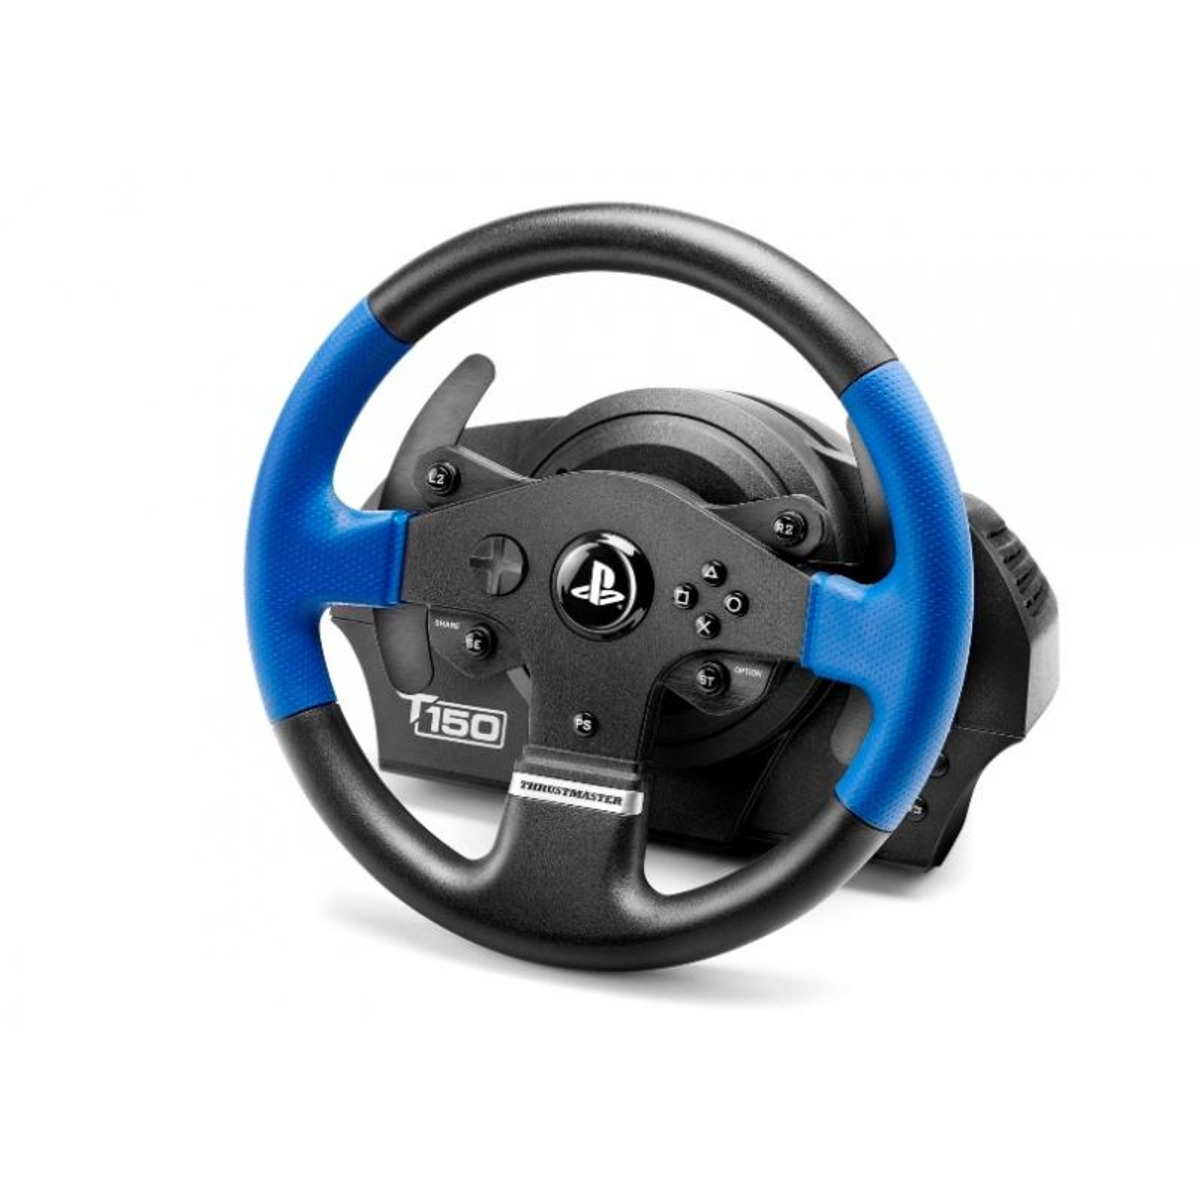 3362934109738-thrustmaster-t150-force-feedback-sterzo-pedali-pc-playstation-4-playstation-3